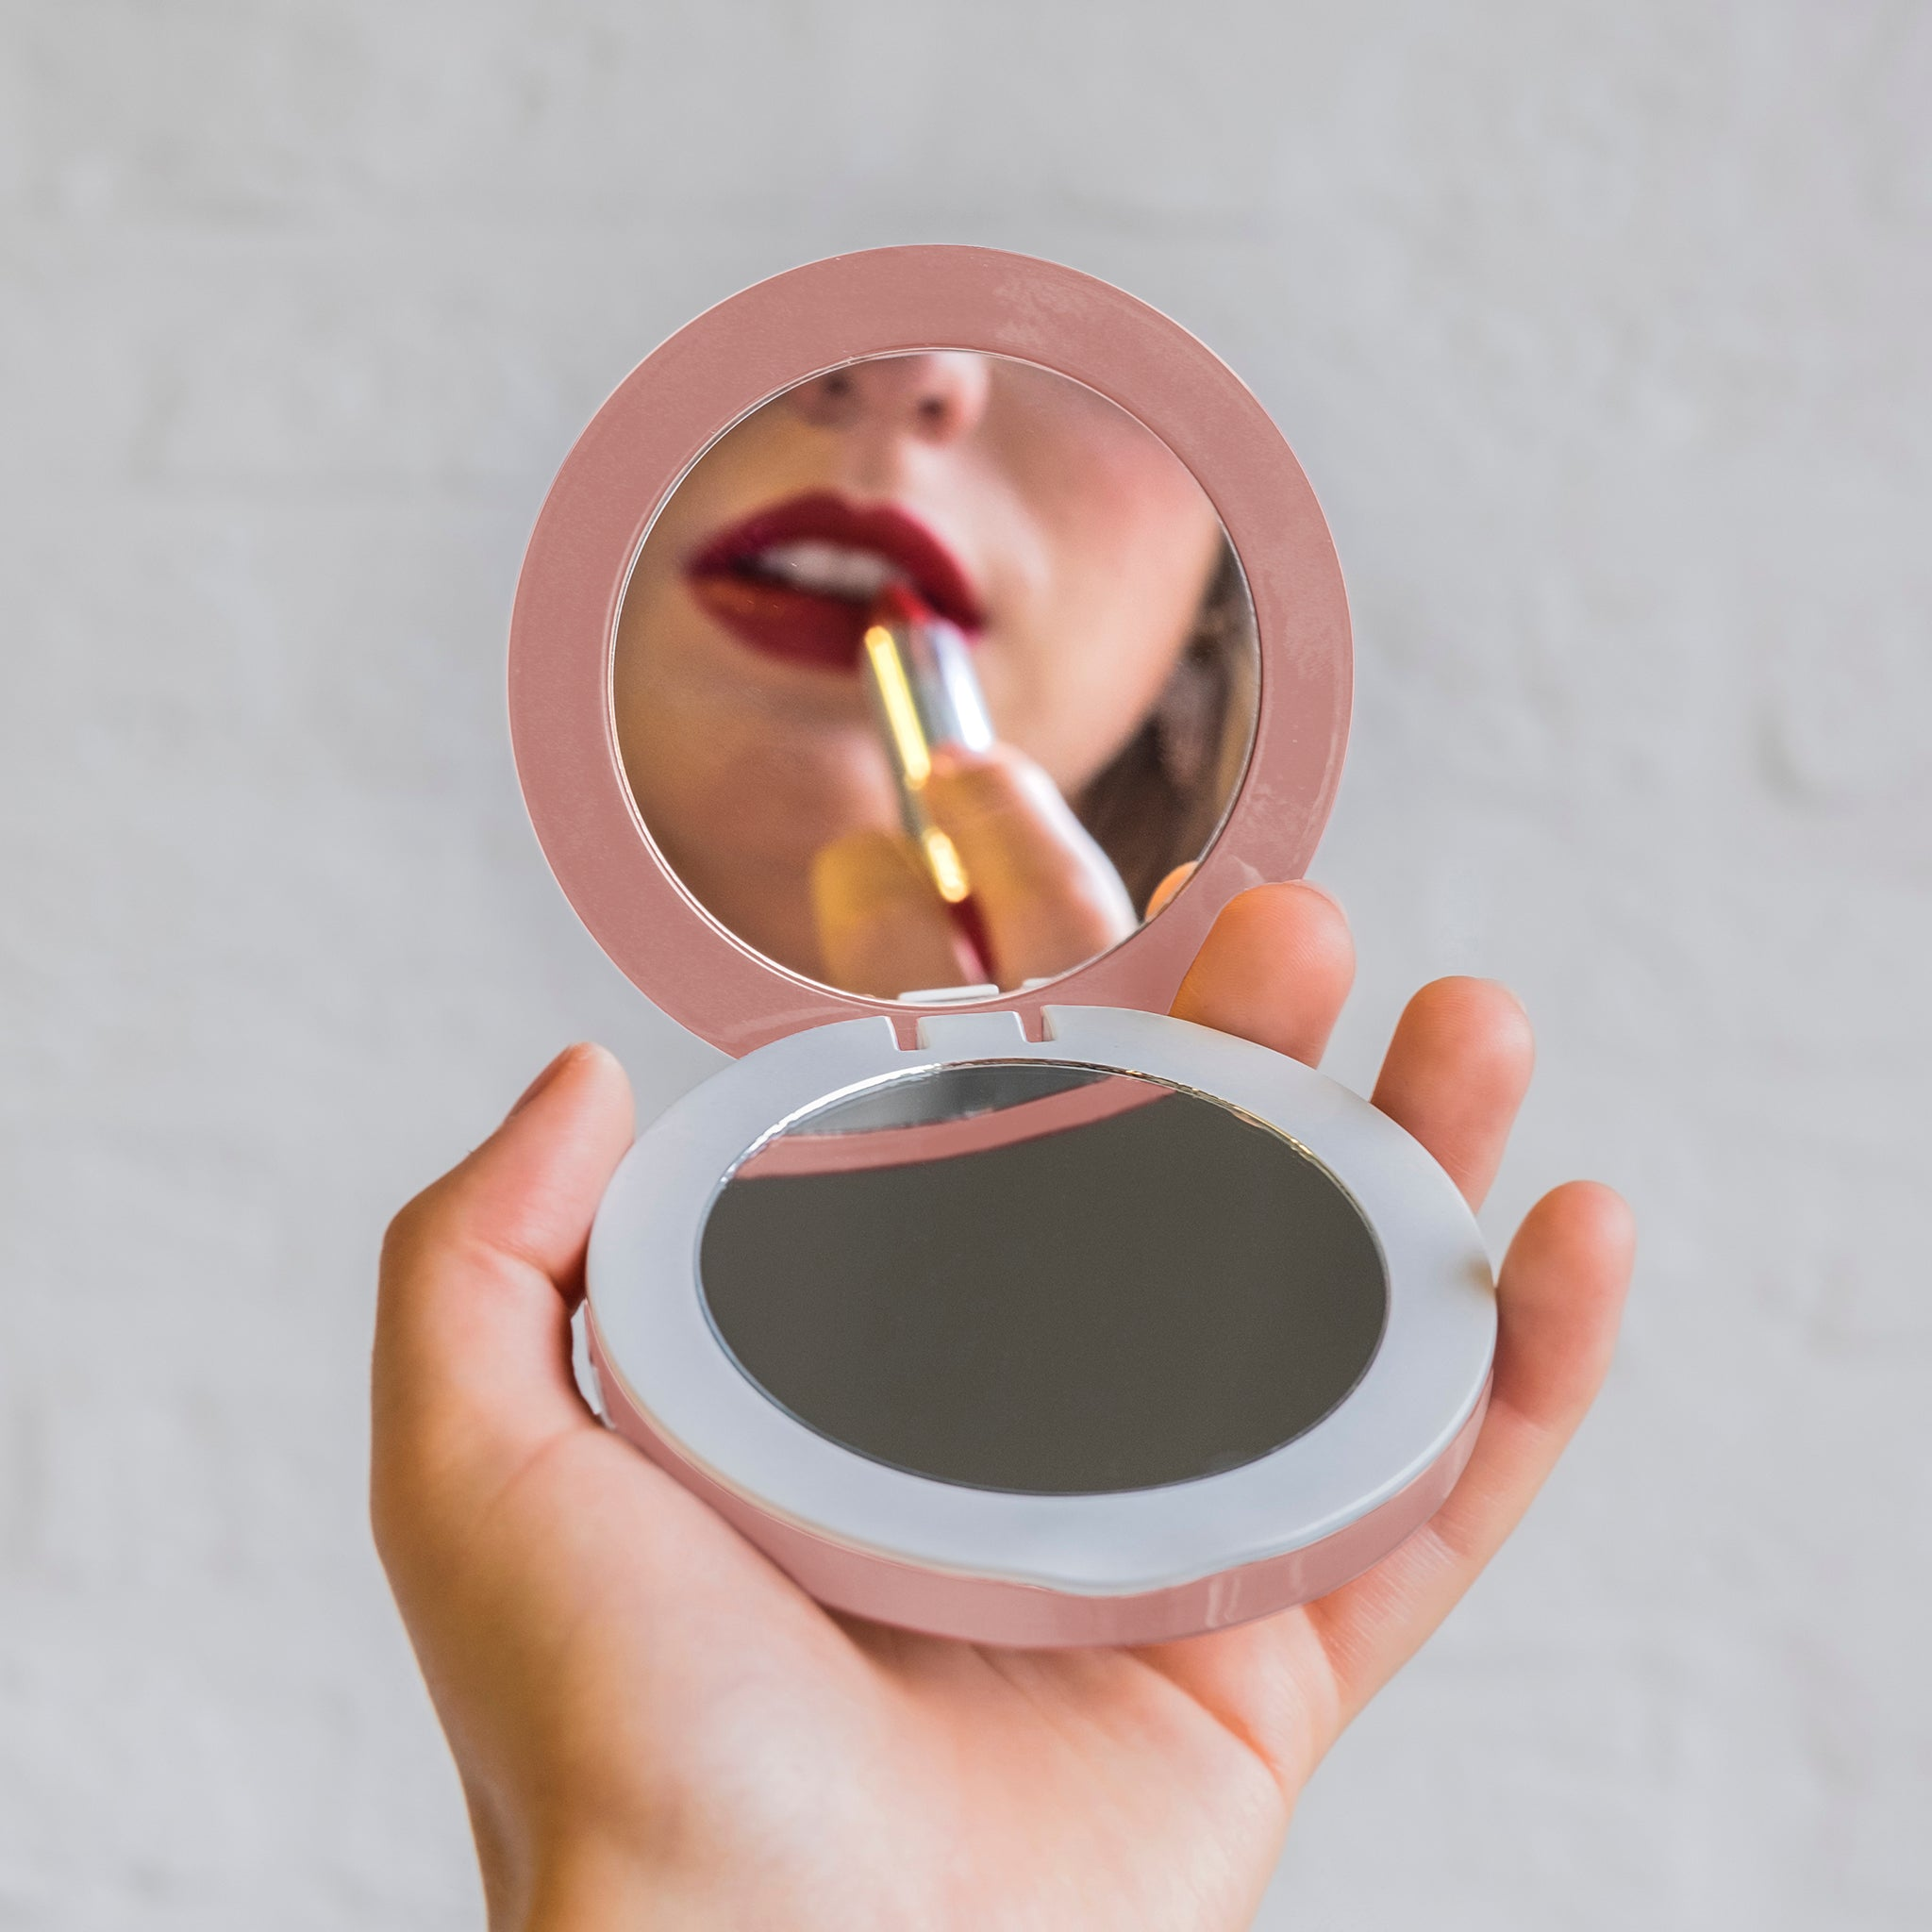 PEARL: LED Compact Mirror & USB Battery Pack